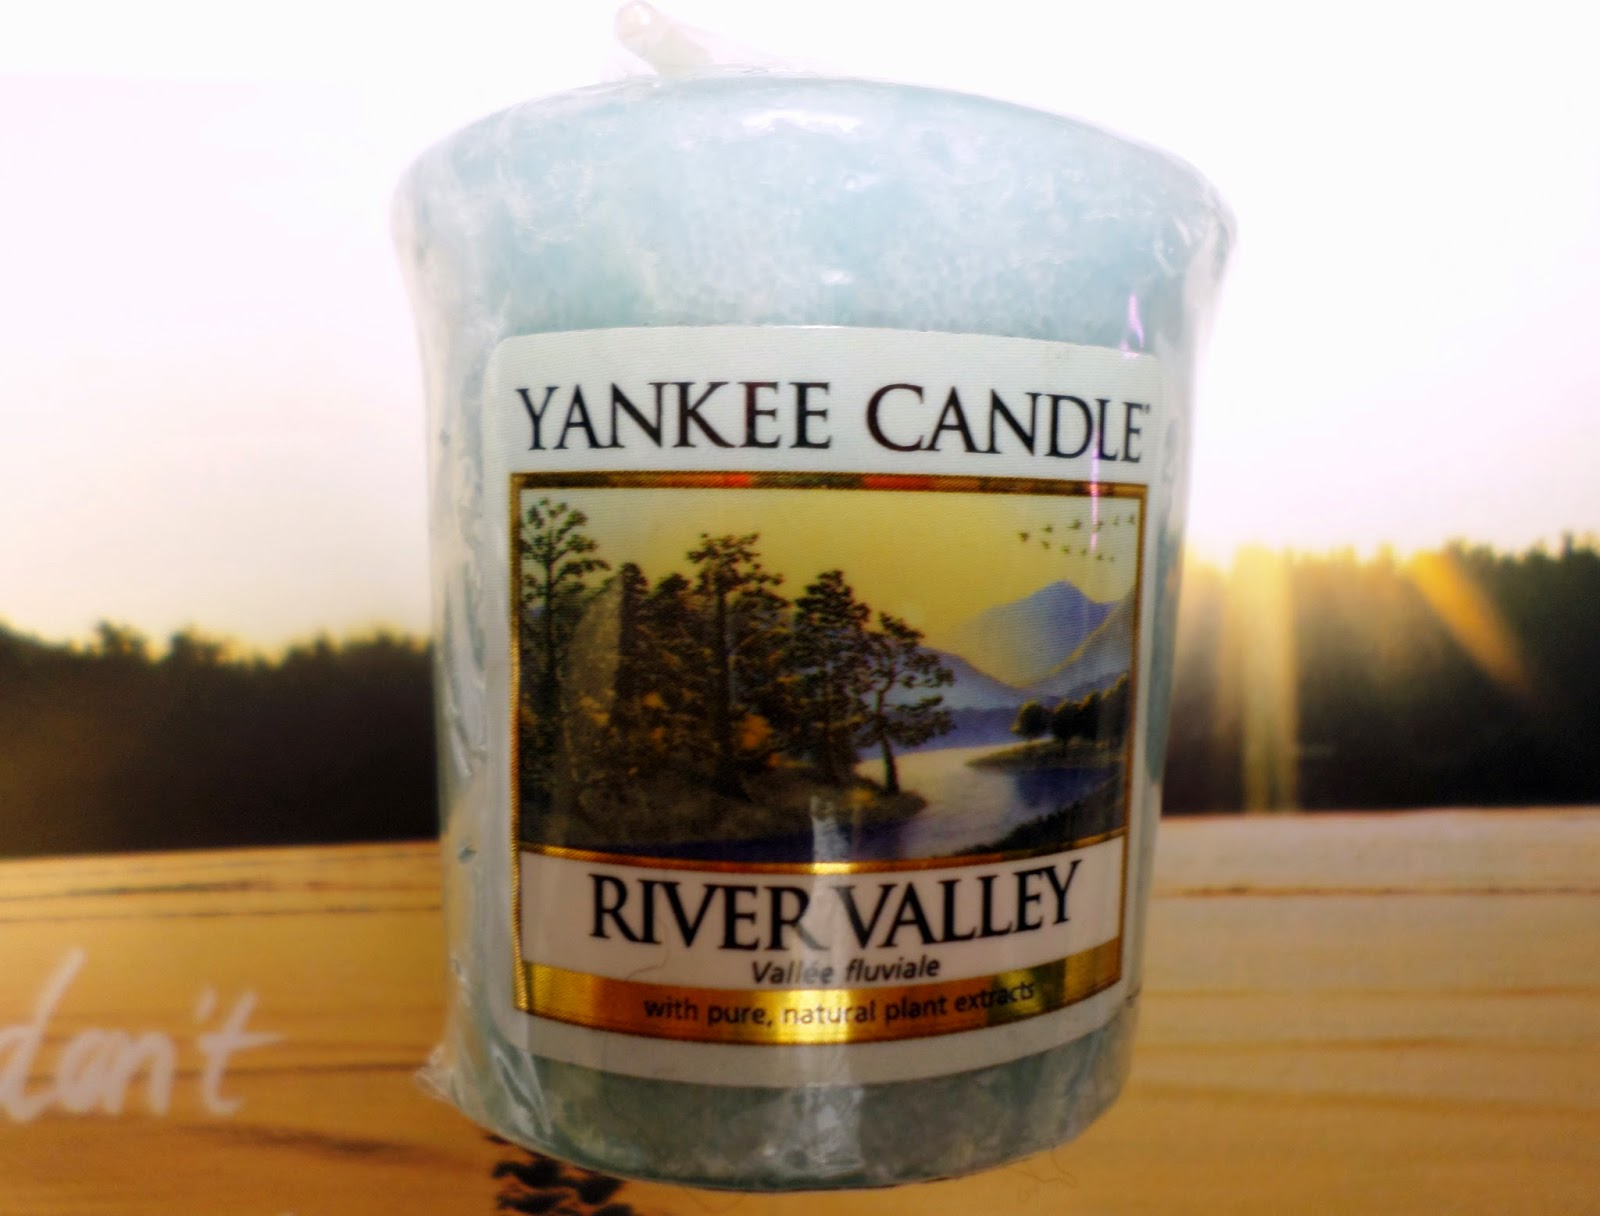 Yankee Candle River Valley Sampler Votive